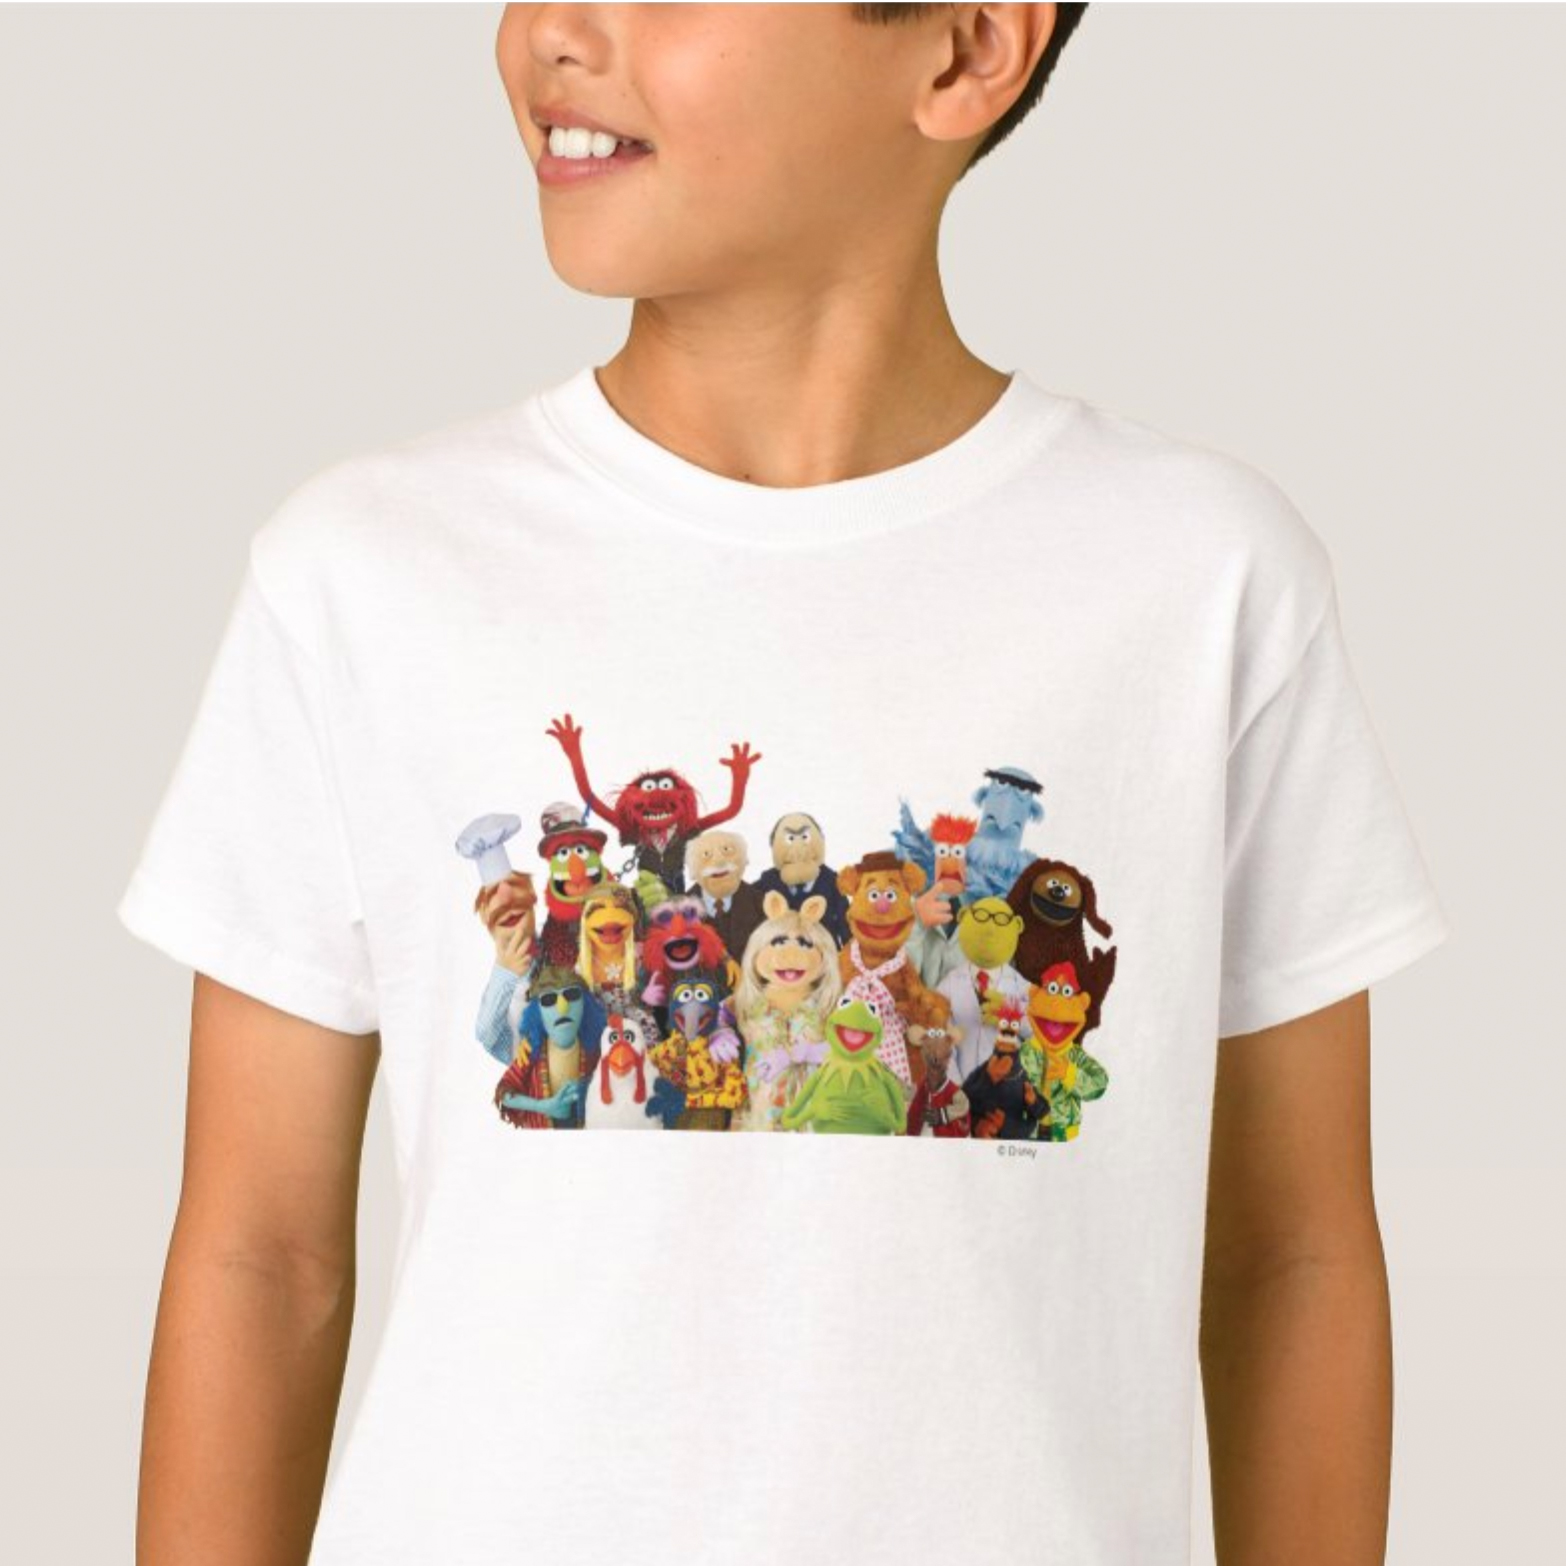 Customizable Muppets T-Shirt